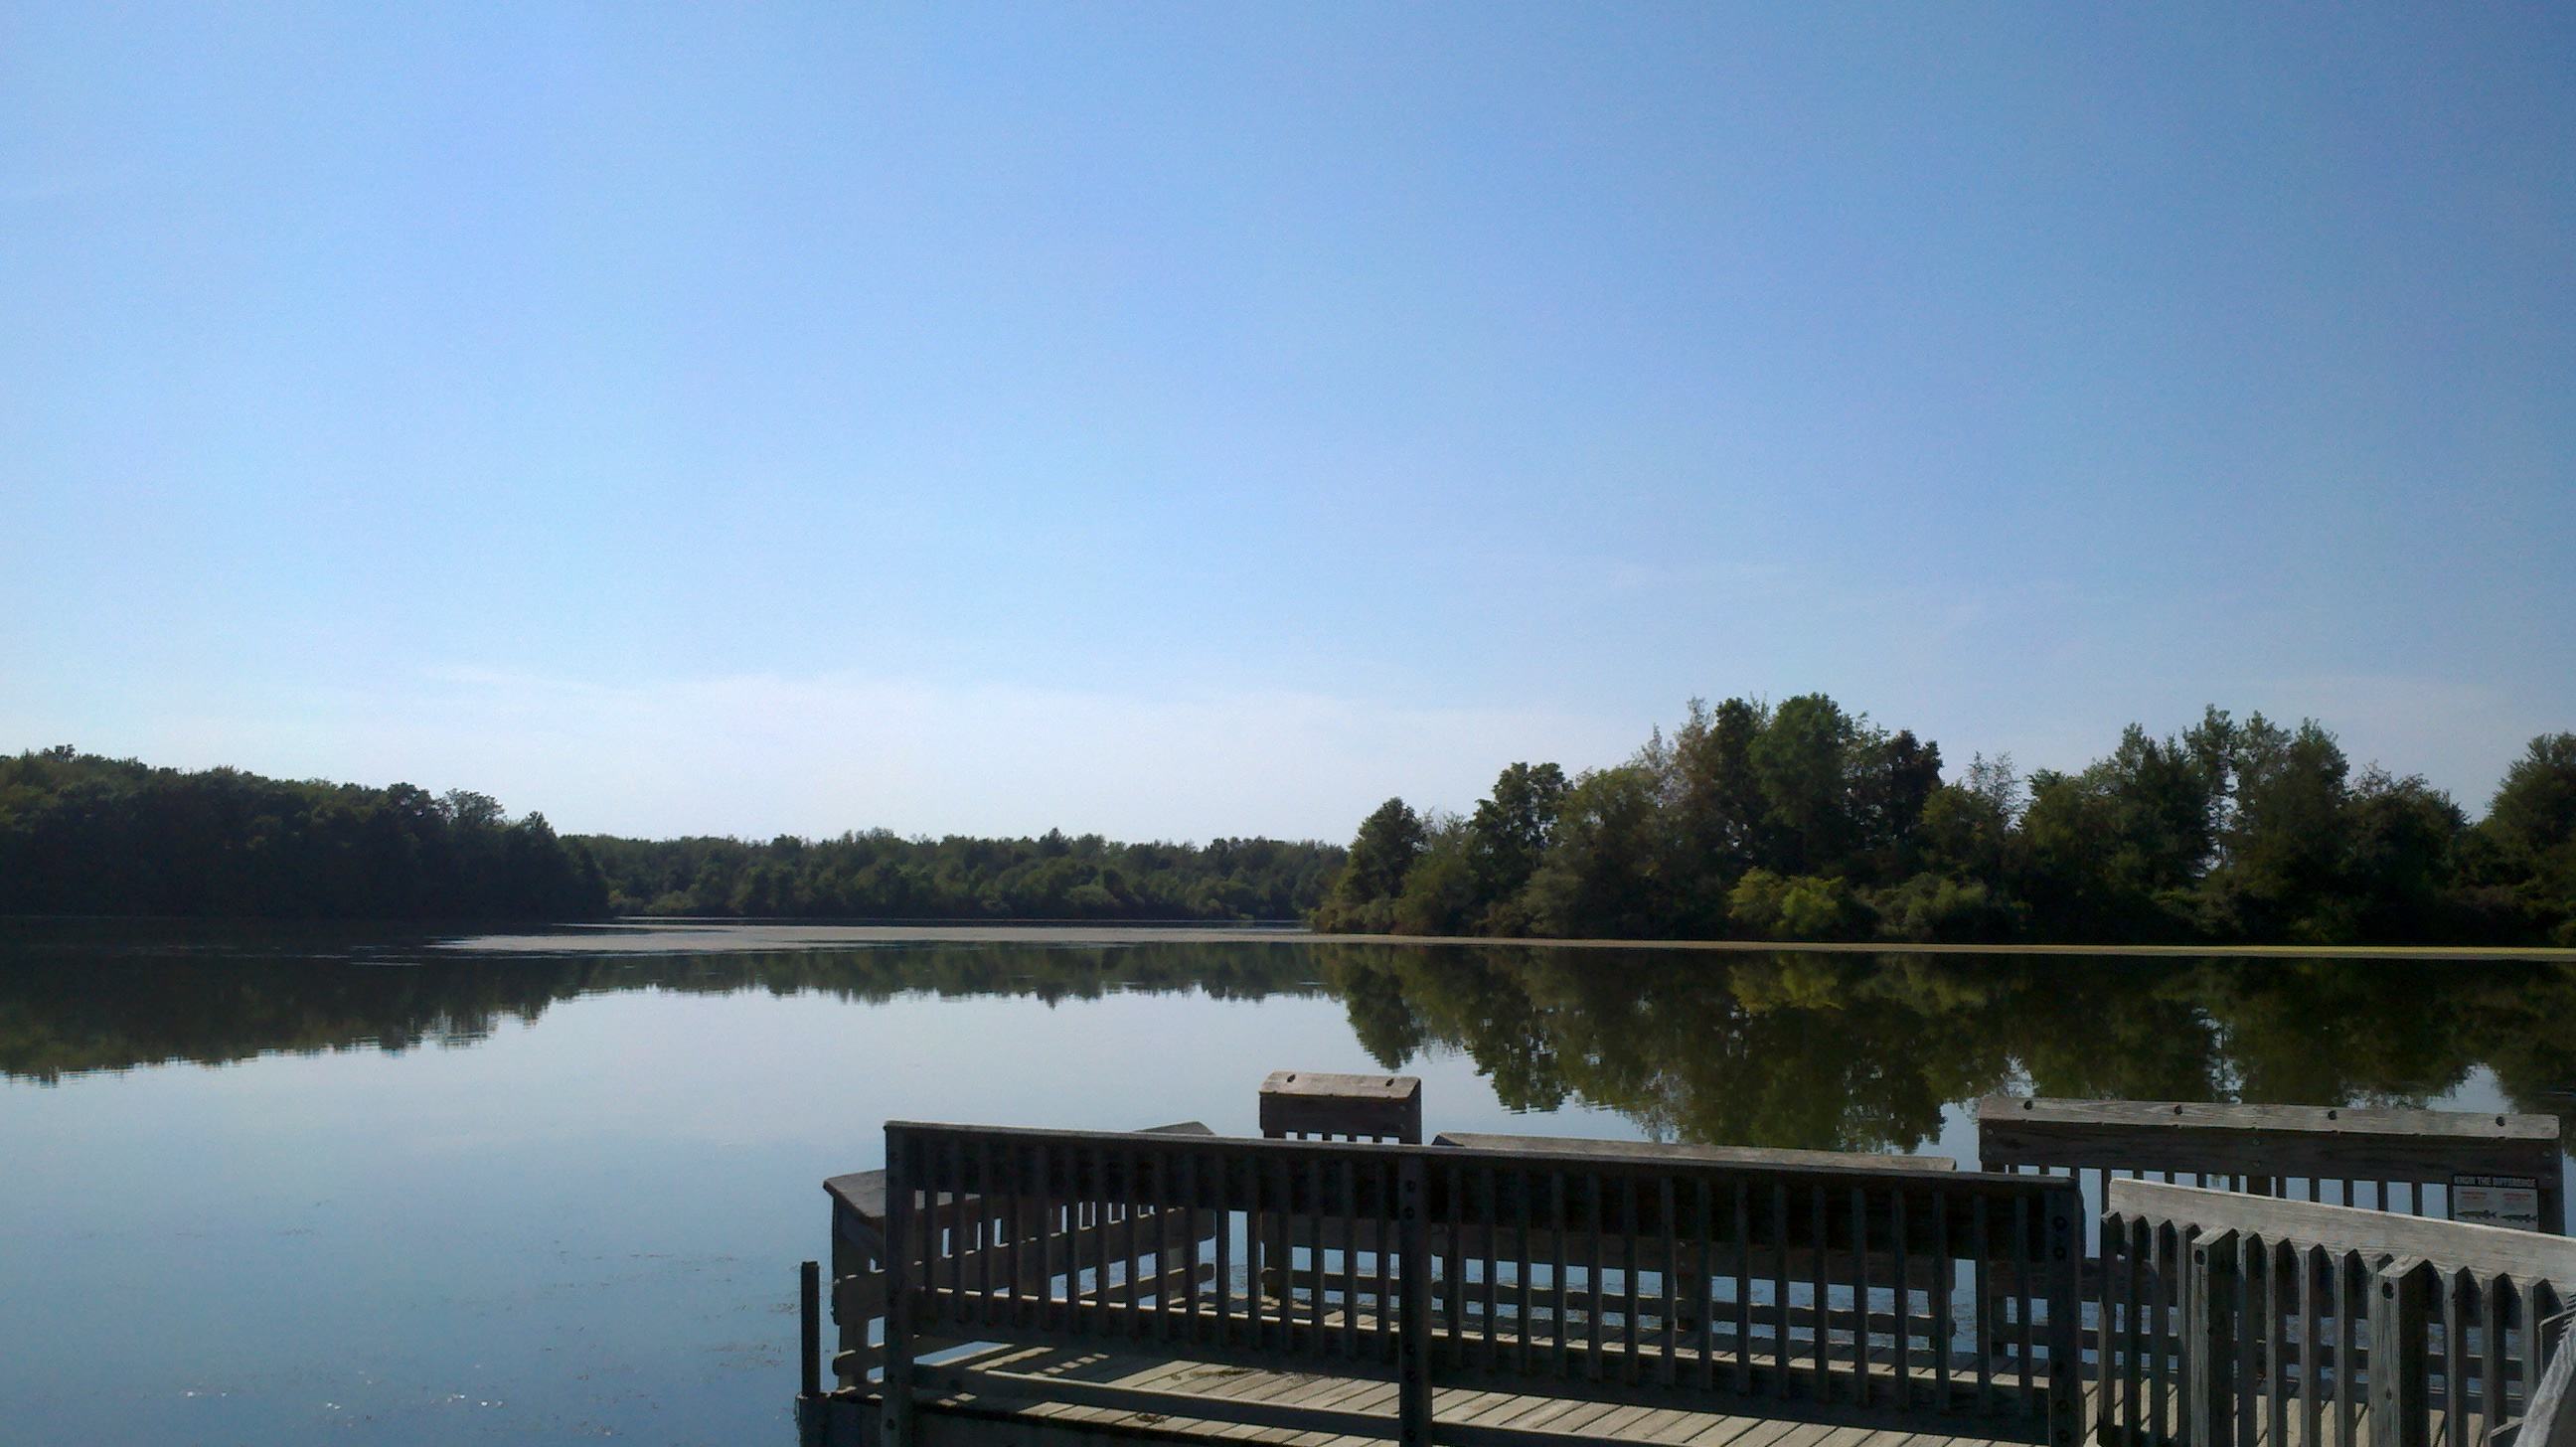 Dock and Lake Ovid